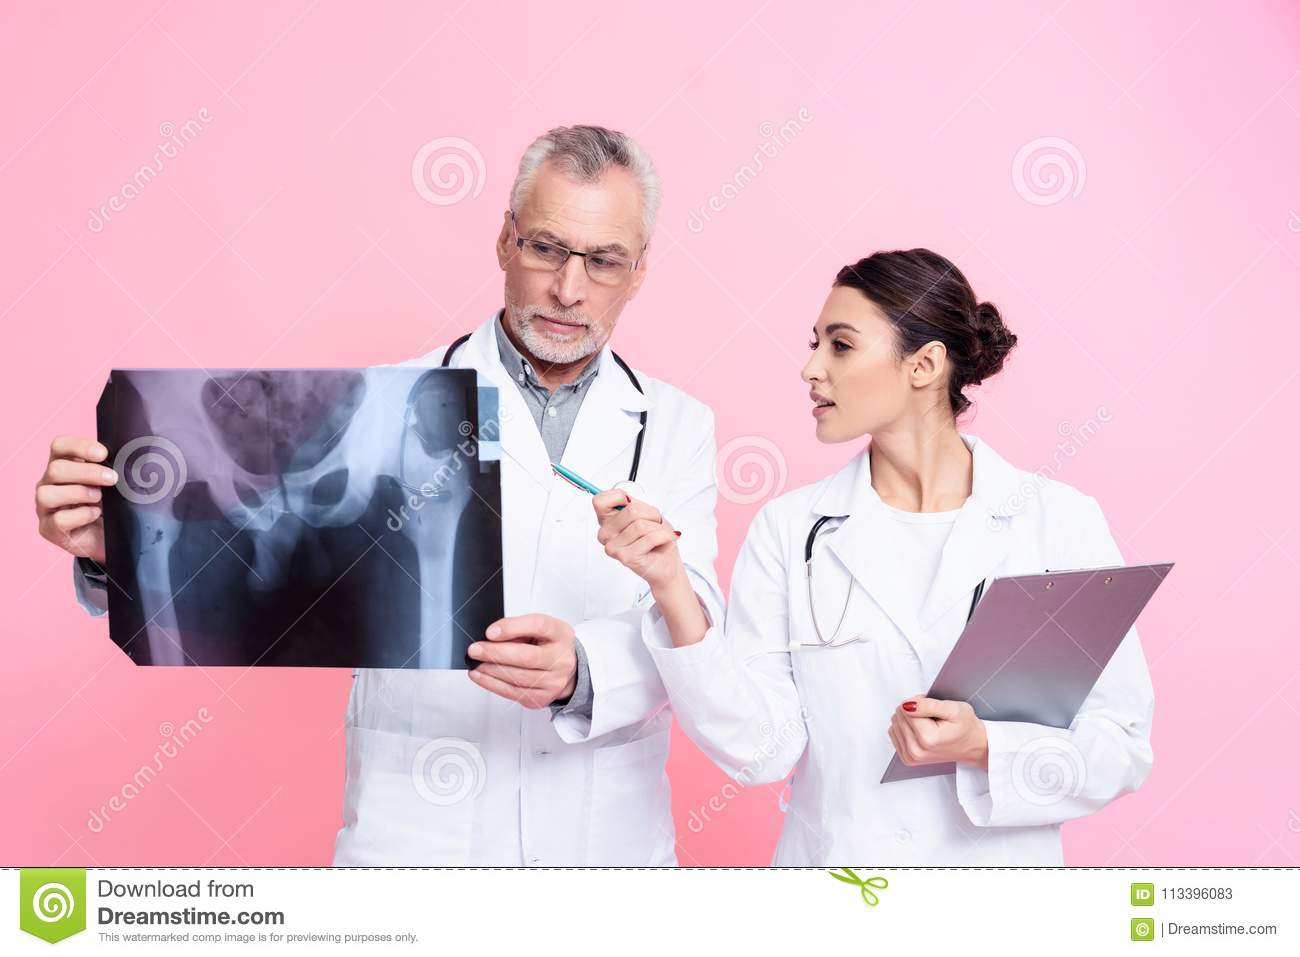 Portrait of male and female doctors with stethoscopes holding x-ray and clipboard isolated.